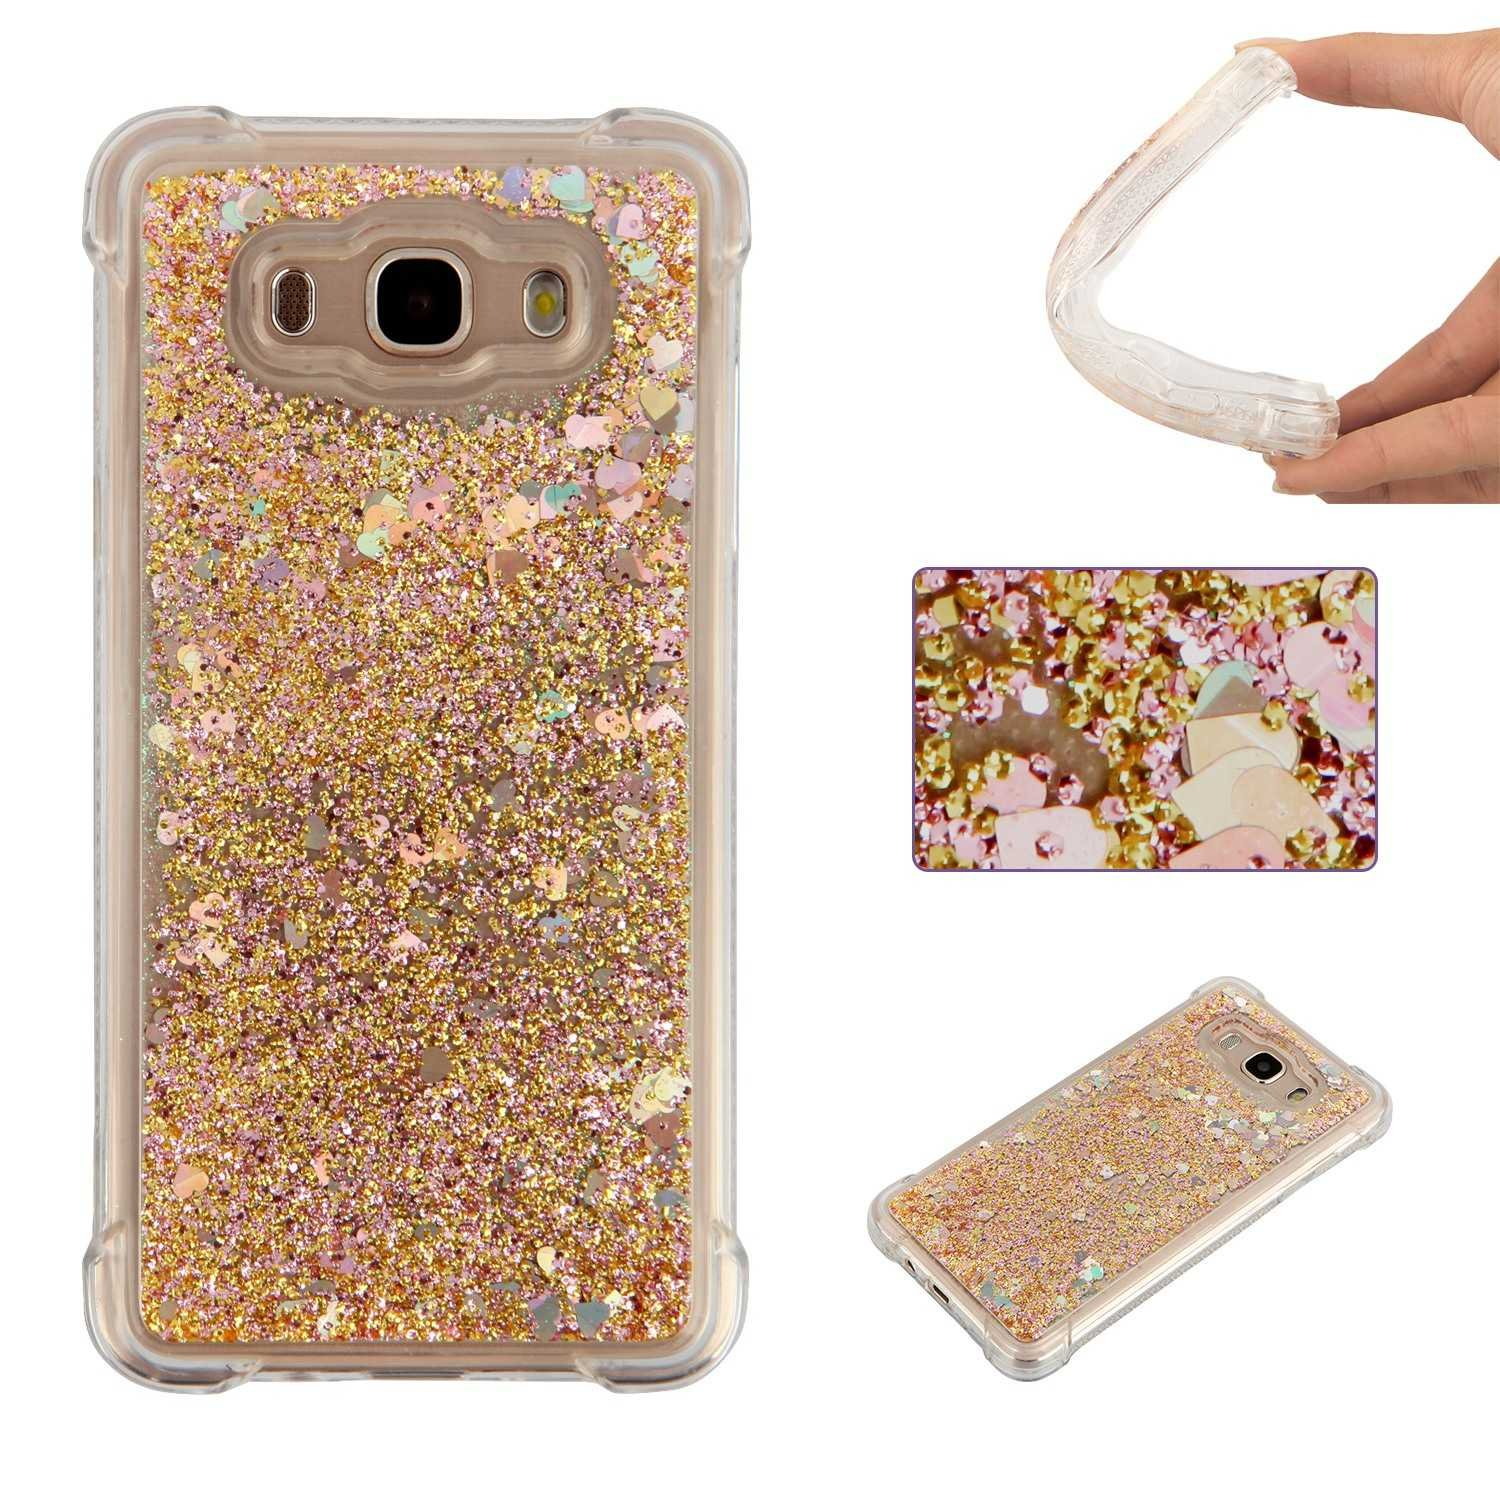 Galaxy J5 2016 Case[with Screen Protector], BoxTii® Galaxy J5 2016 Glitter Liquid TPU Cover, Shockproof Protective Case for Samsung Galaxy J5 2016 (Gold) BoxTii® Galaxy J5 2016 Glitter Liquid TPU Cover BOUK11-J510-F02